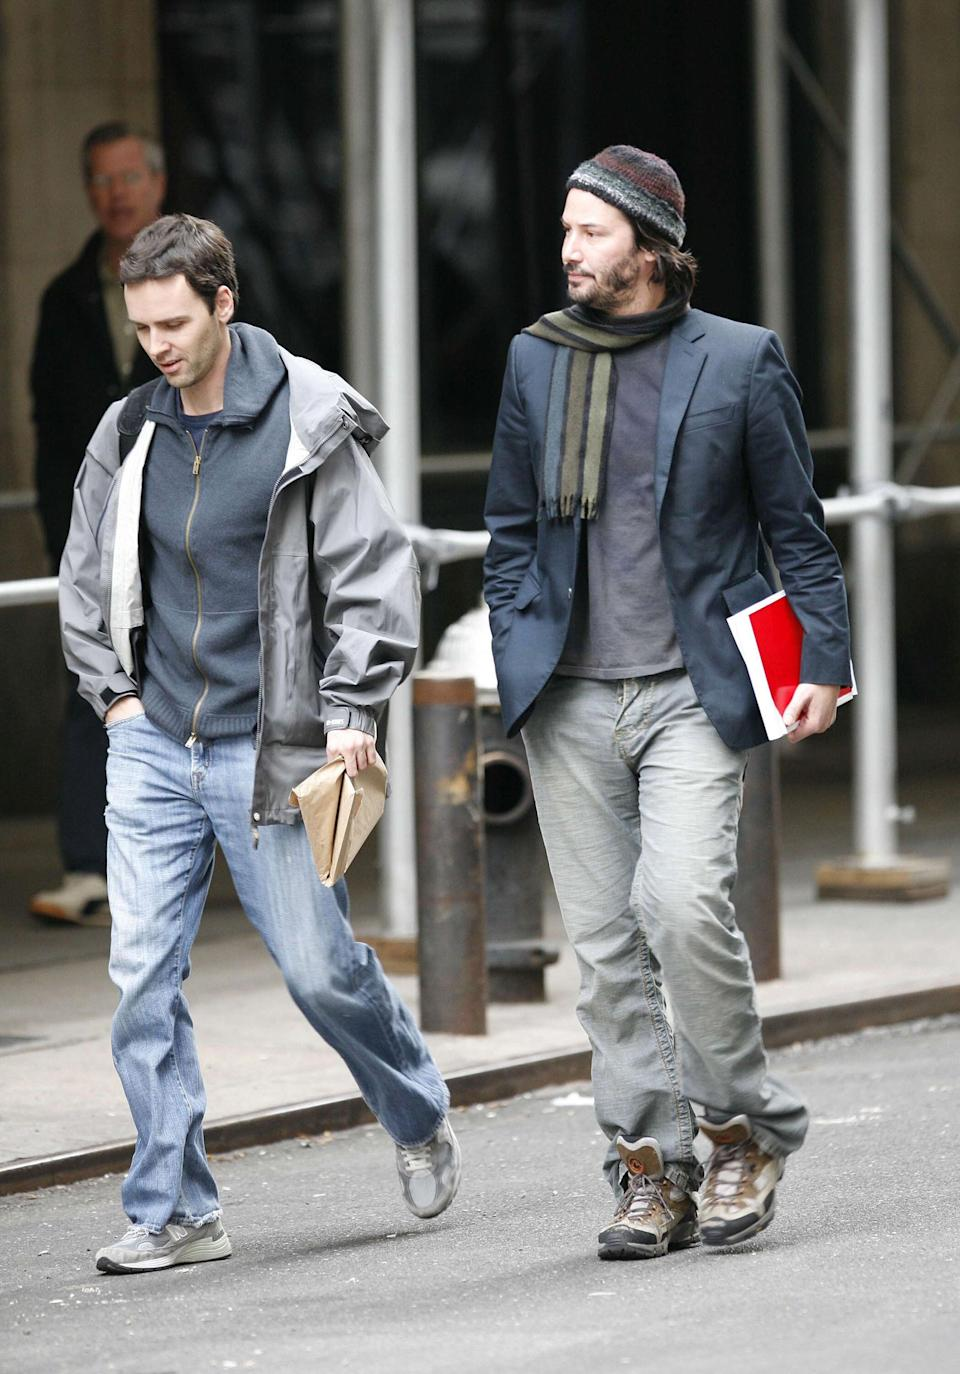 Reeves and friend in Chelsea in New York City.